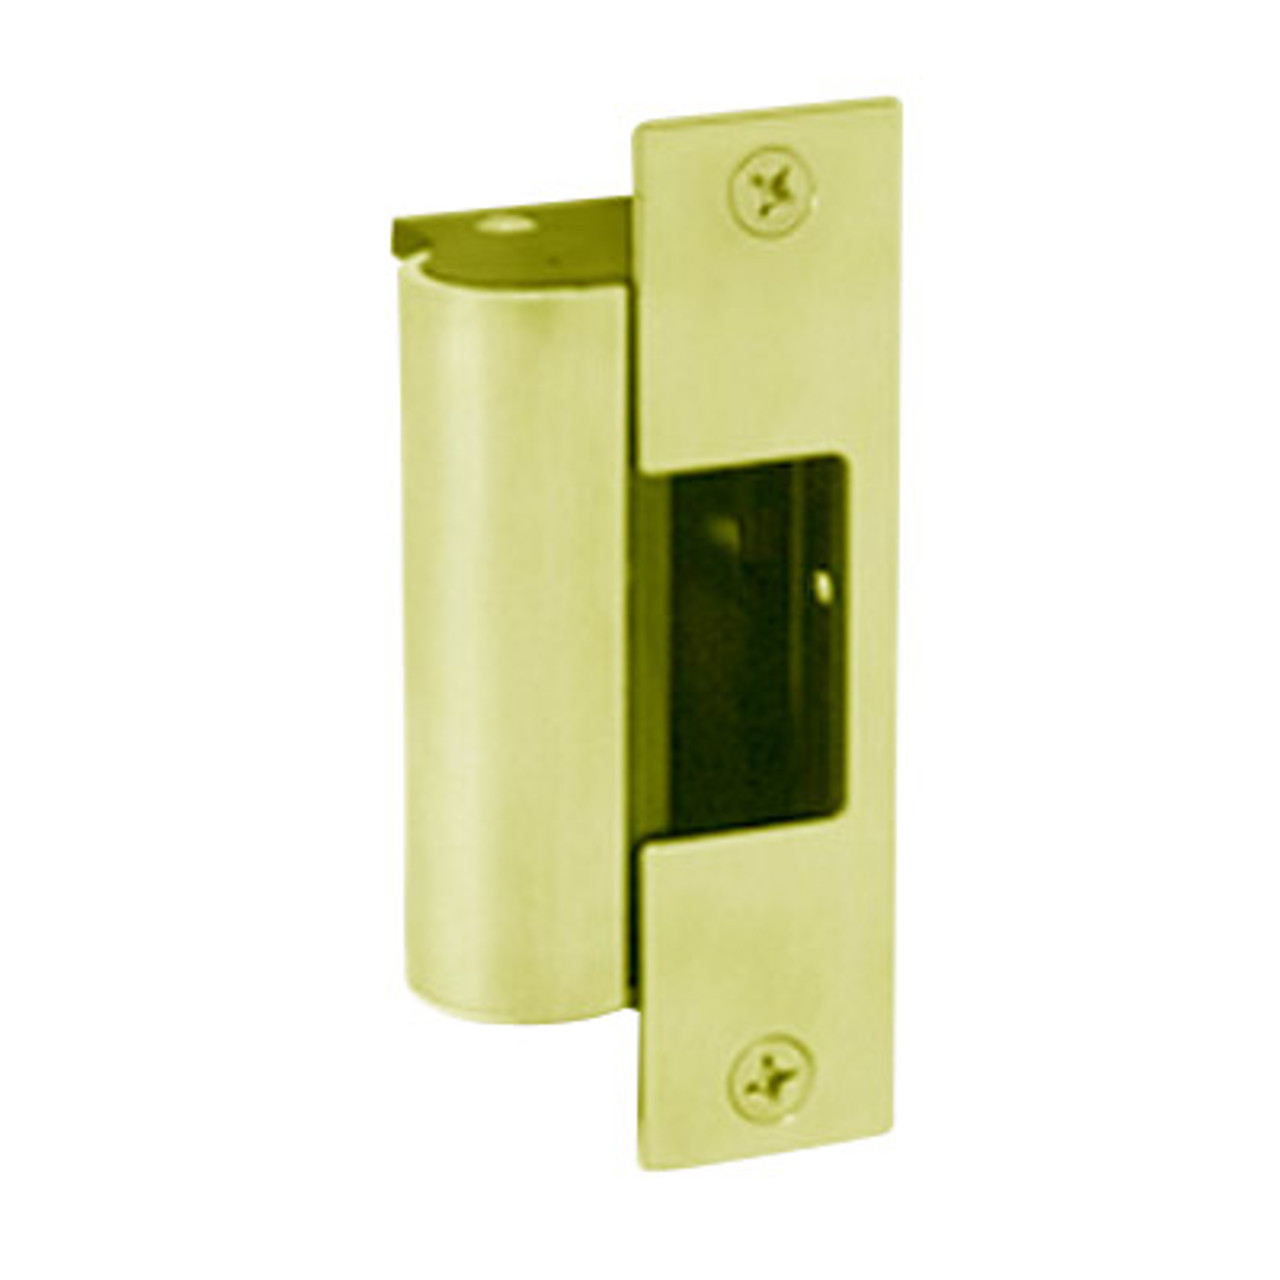 1006-F-605-LBM Hes Fail Safe Electric Strike Body with Latchbolt Monitor in Bright Brass Finish